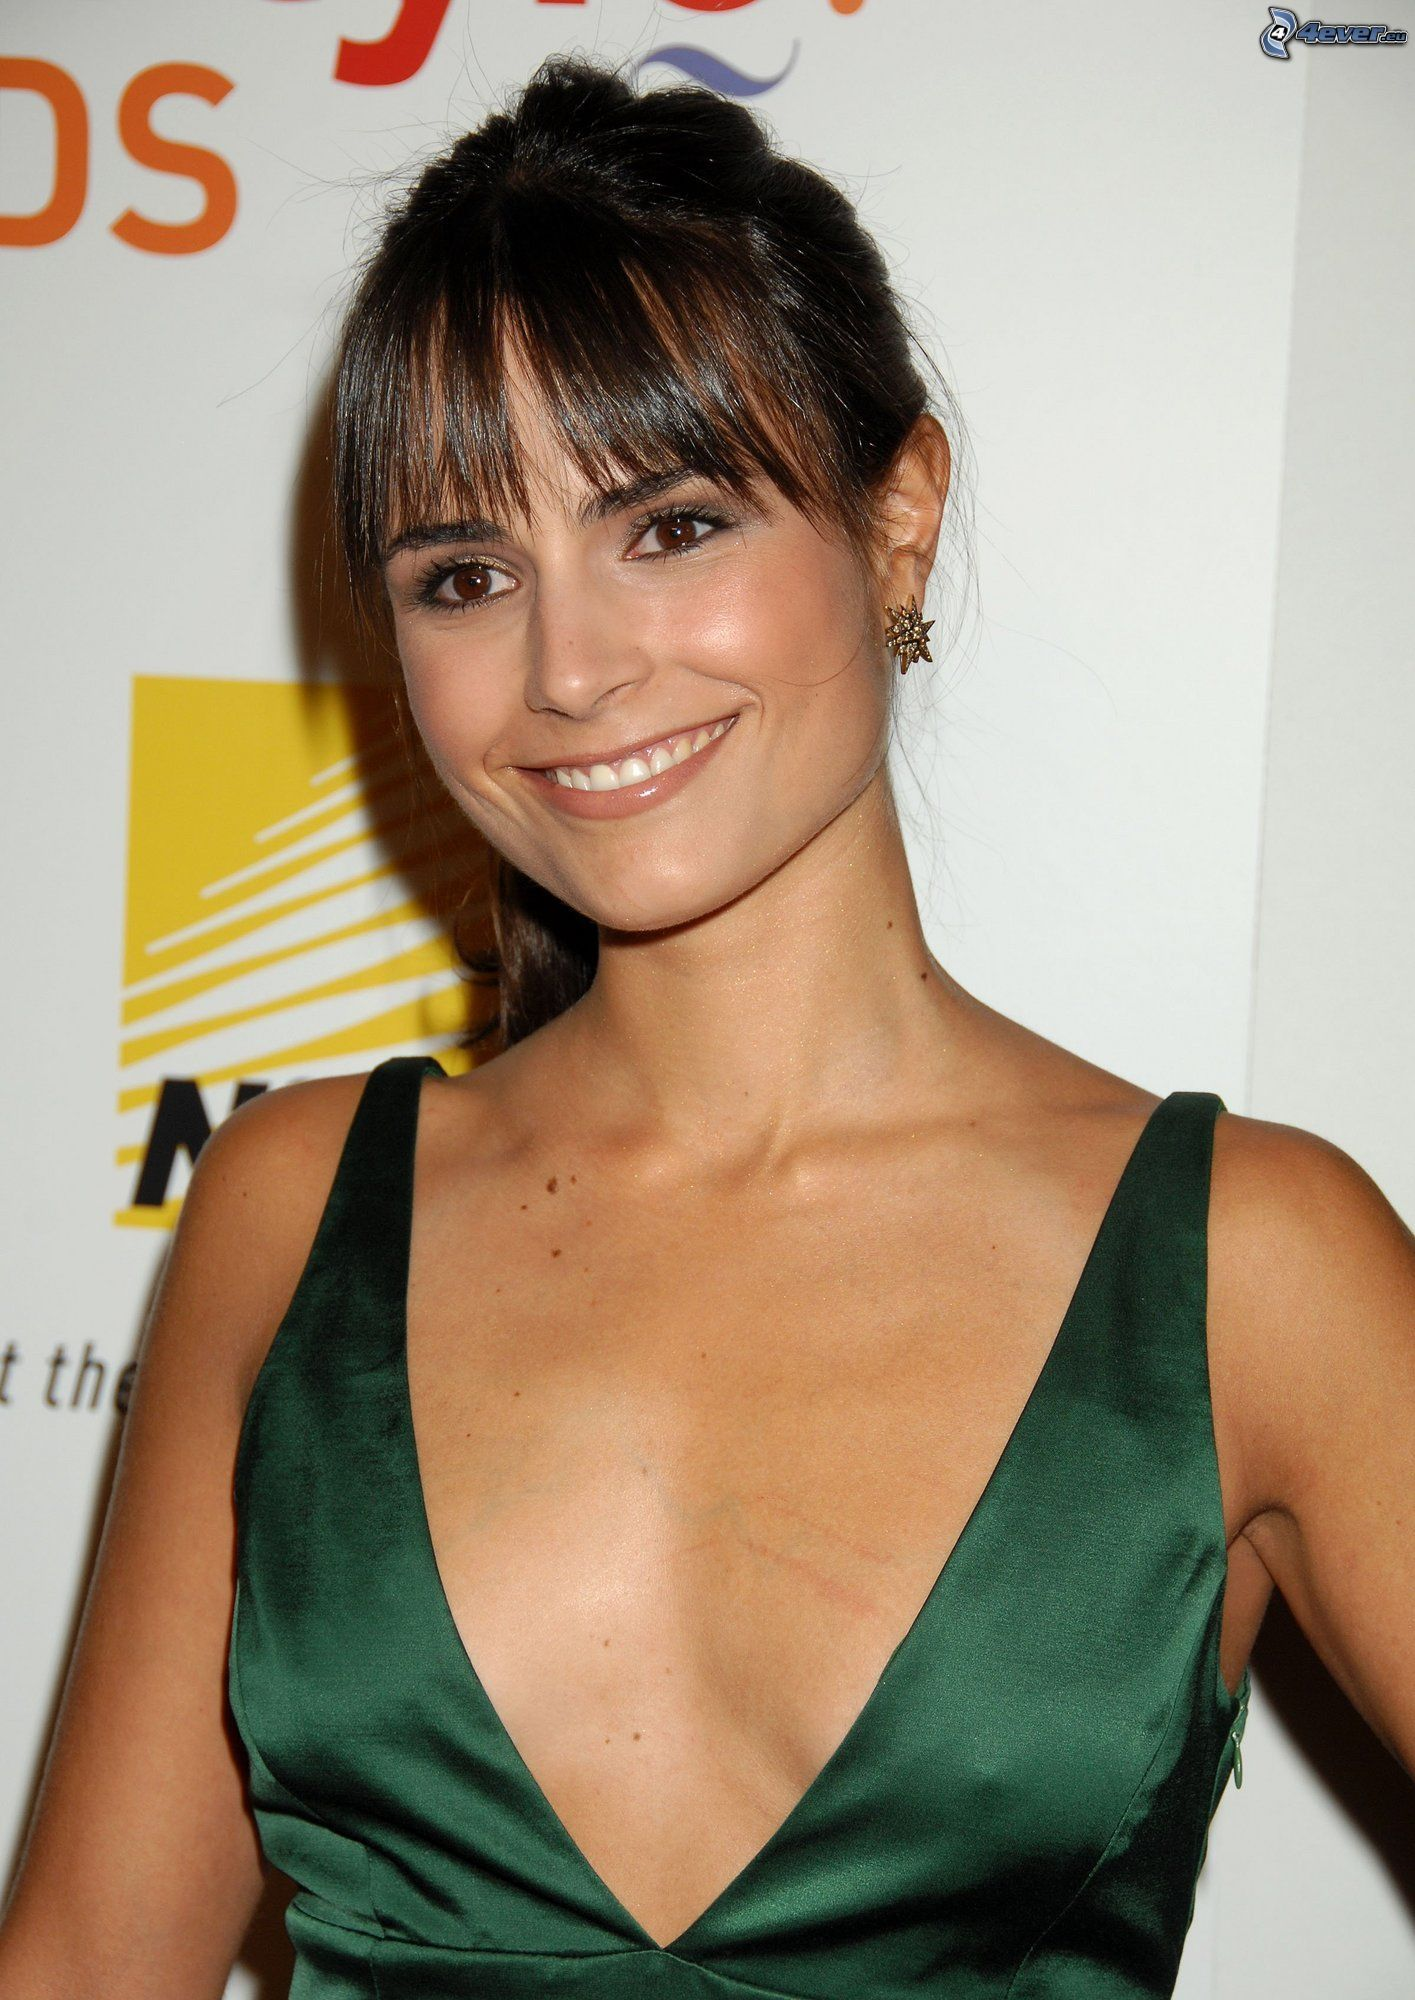 Tits Cleavage Jordana Brewster naked photo 2017